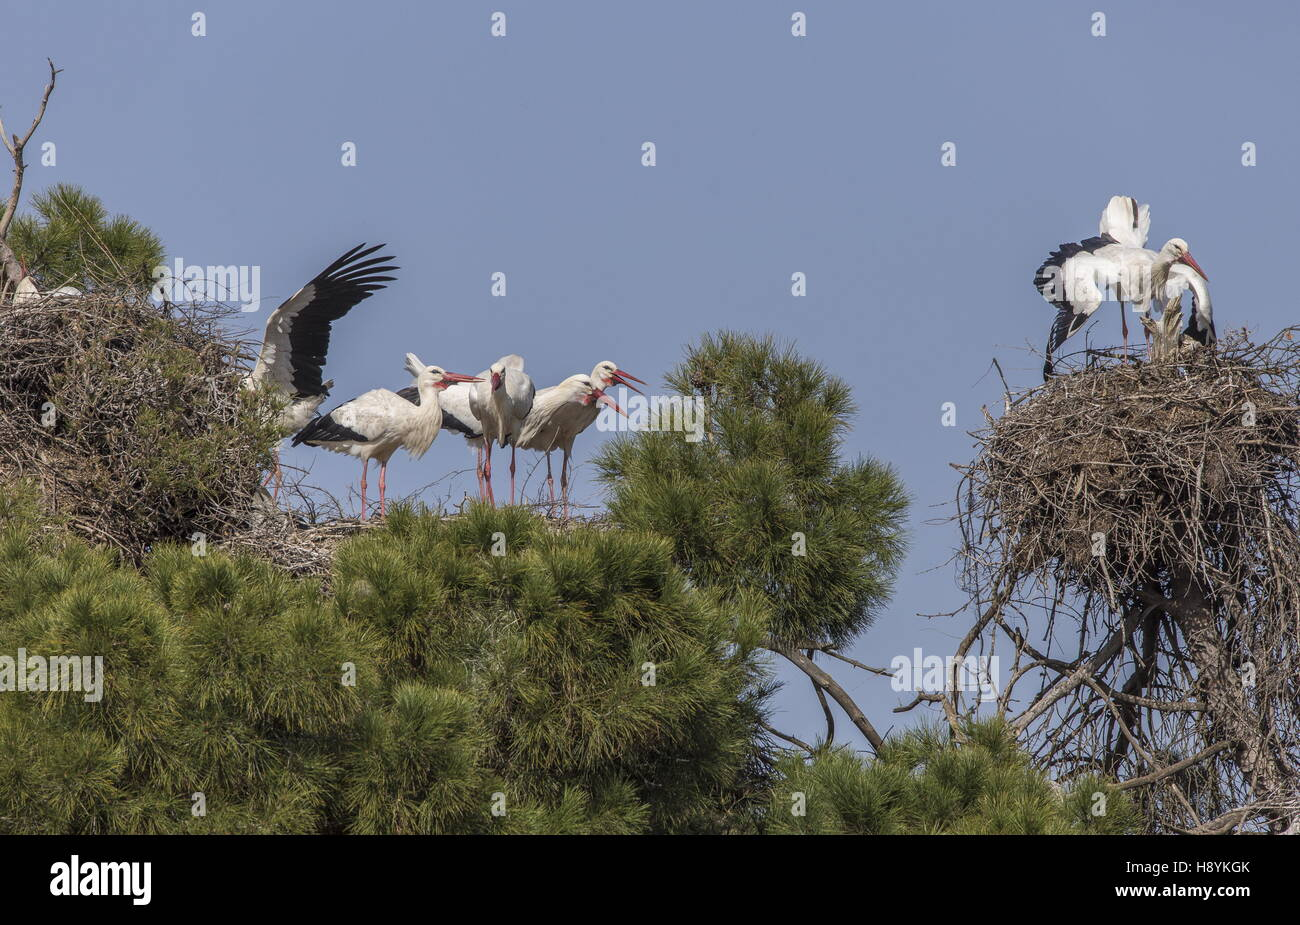 Breeding colony of White Storks, Ciconia ciconia, in old pines, Extremadura, South-West Spain - Stock Image